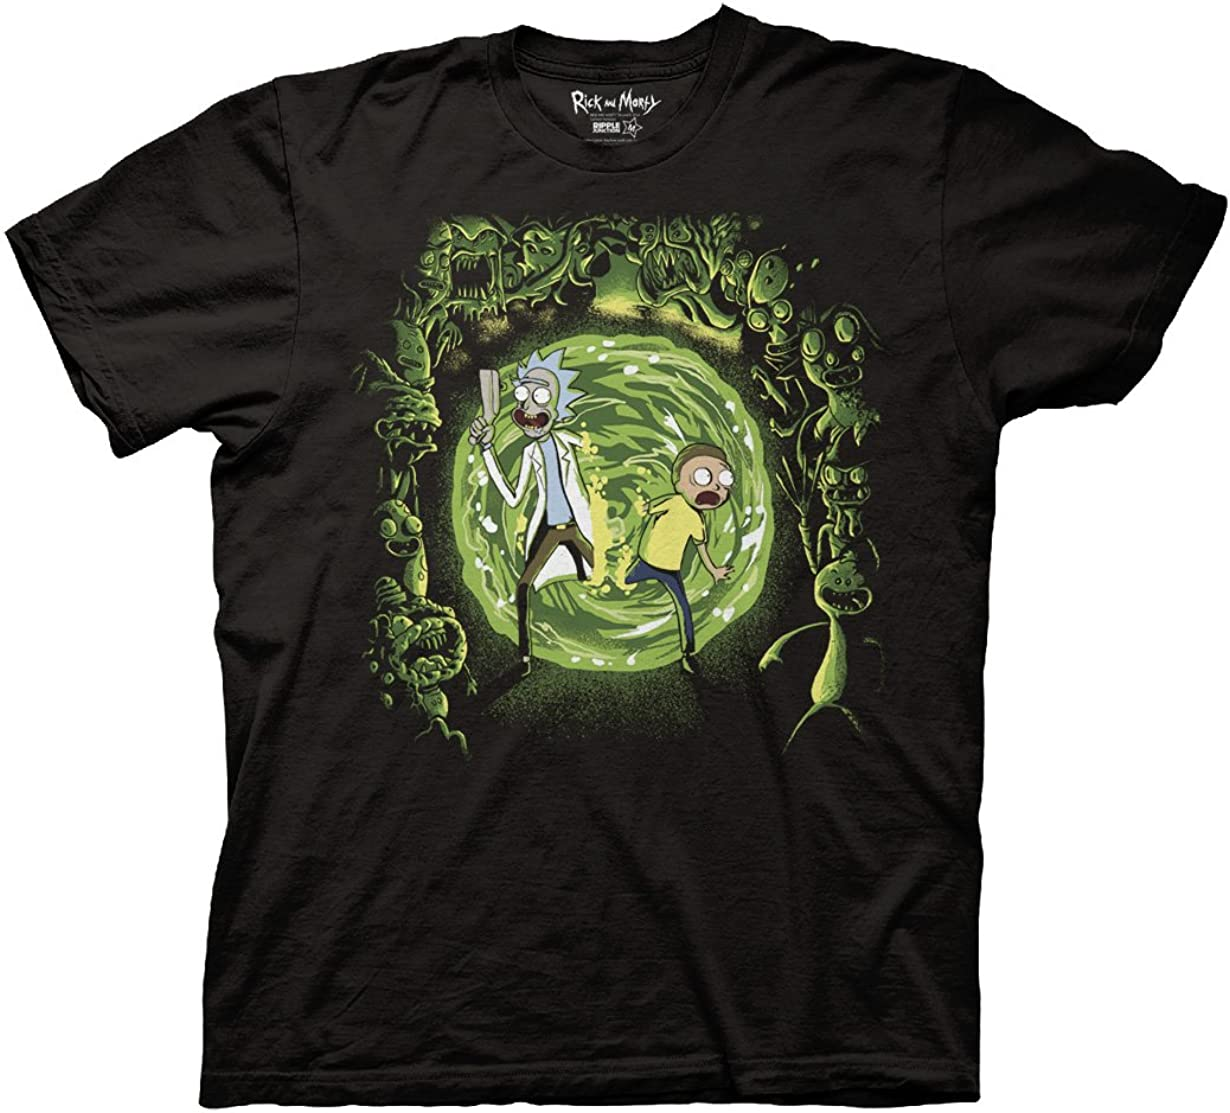 Ripple Junction Rick and Morty Adult Portal and The Monsters Crew T-Shirt